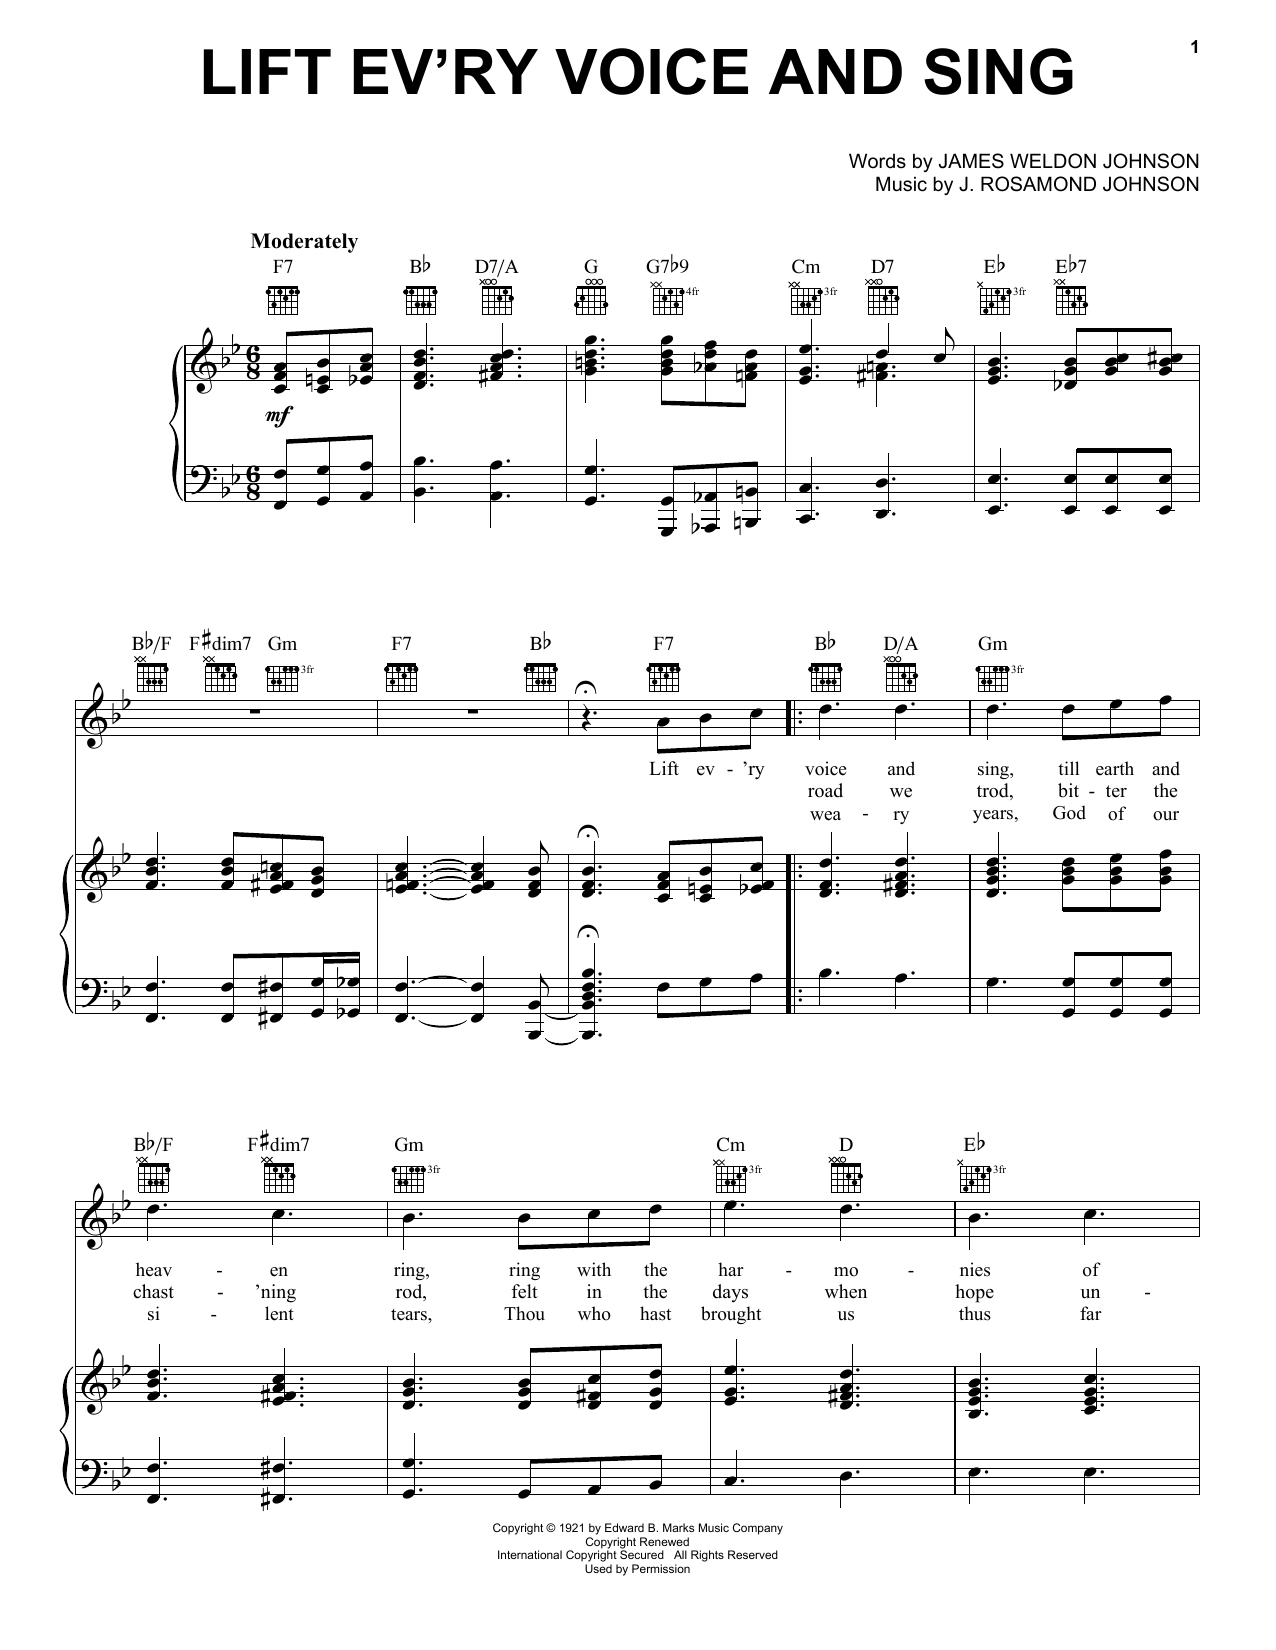 J. Rosamond Johnson Lift Ev'ry Voice And Sing sheet music preview music notes and score for Piano, Vocal & Guitar (Right-Hand Melody) including 3 page(s)